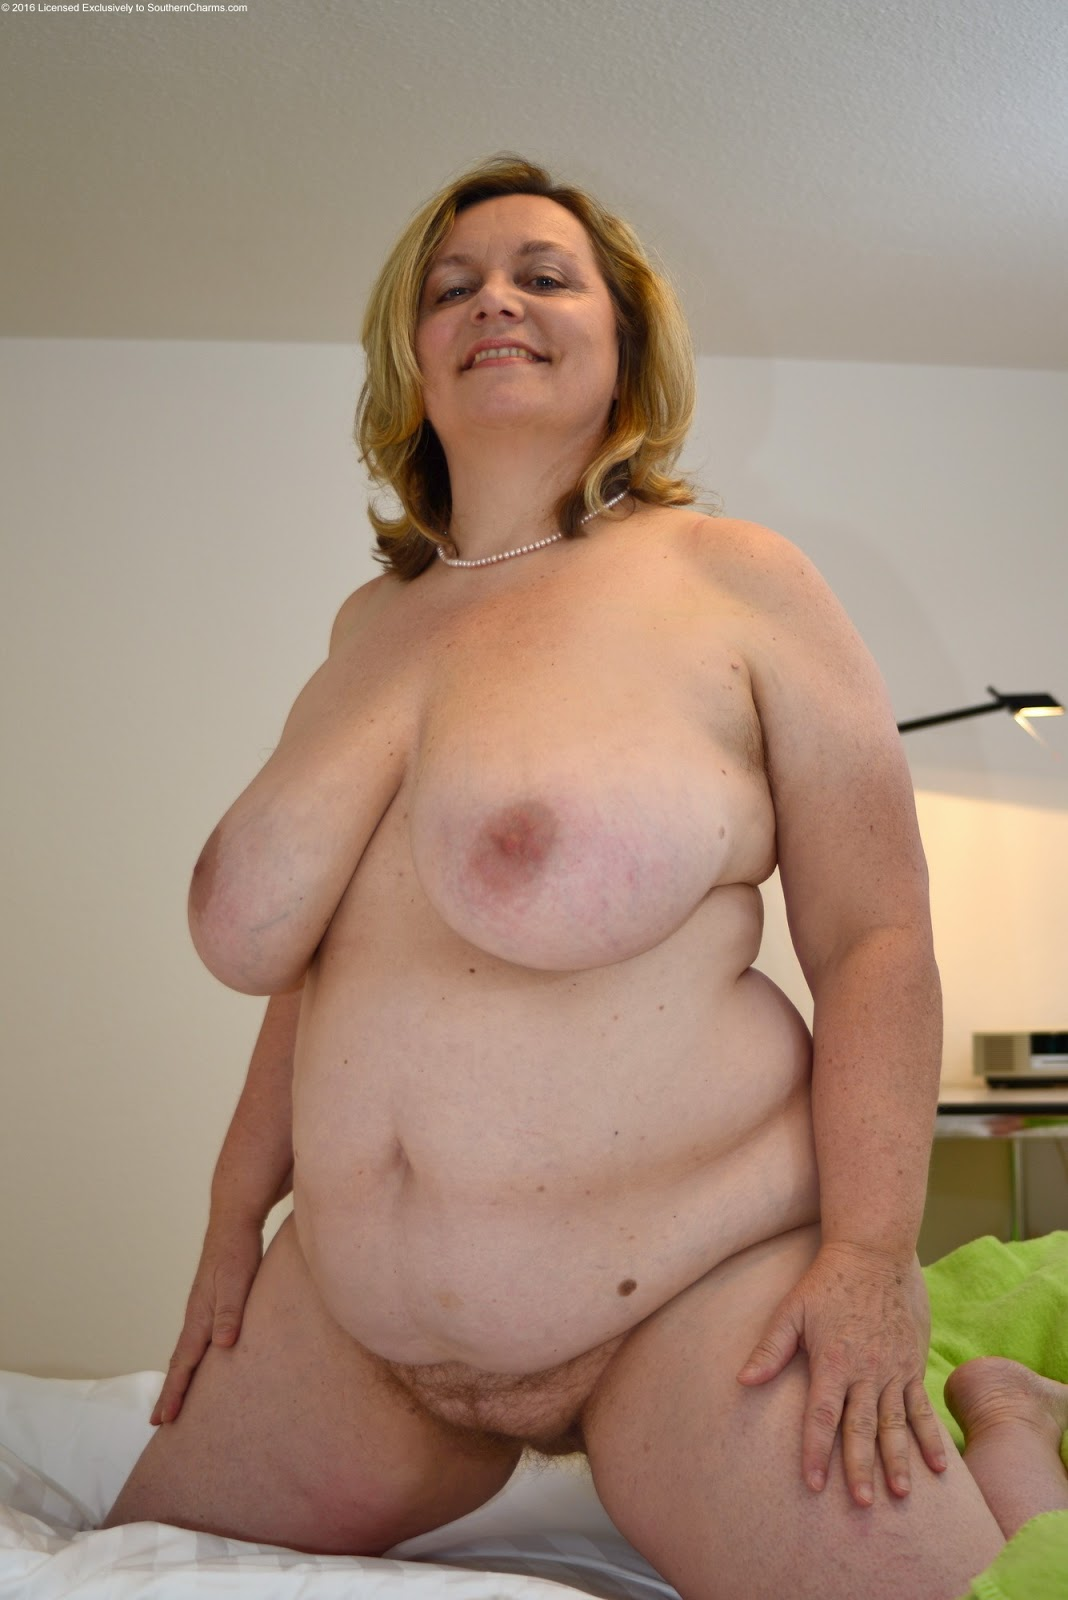 Sexy Older Lady Pics